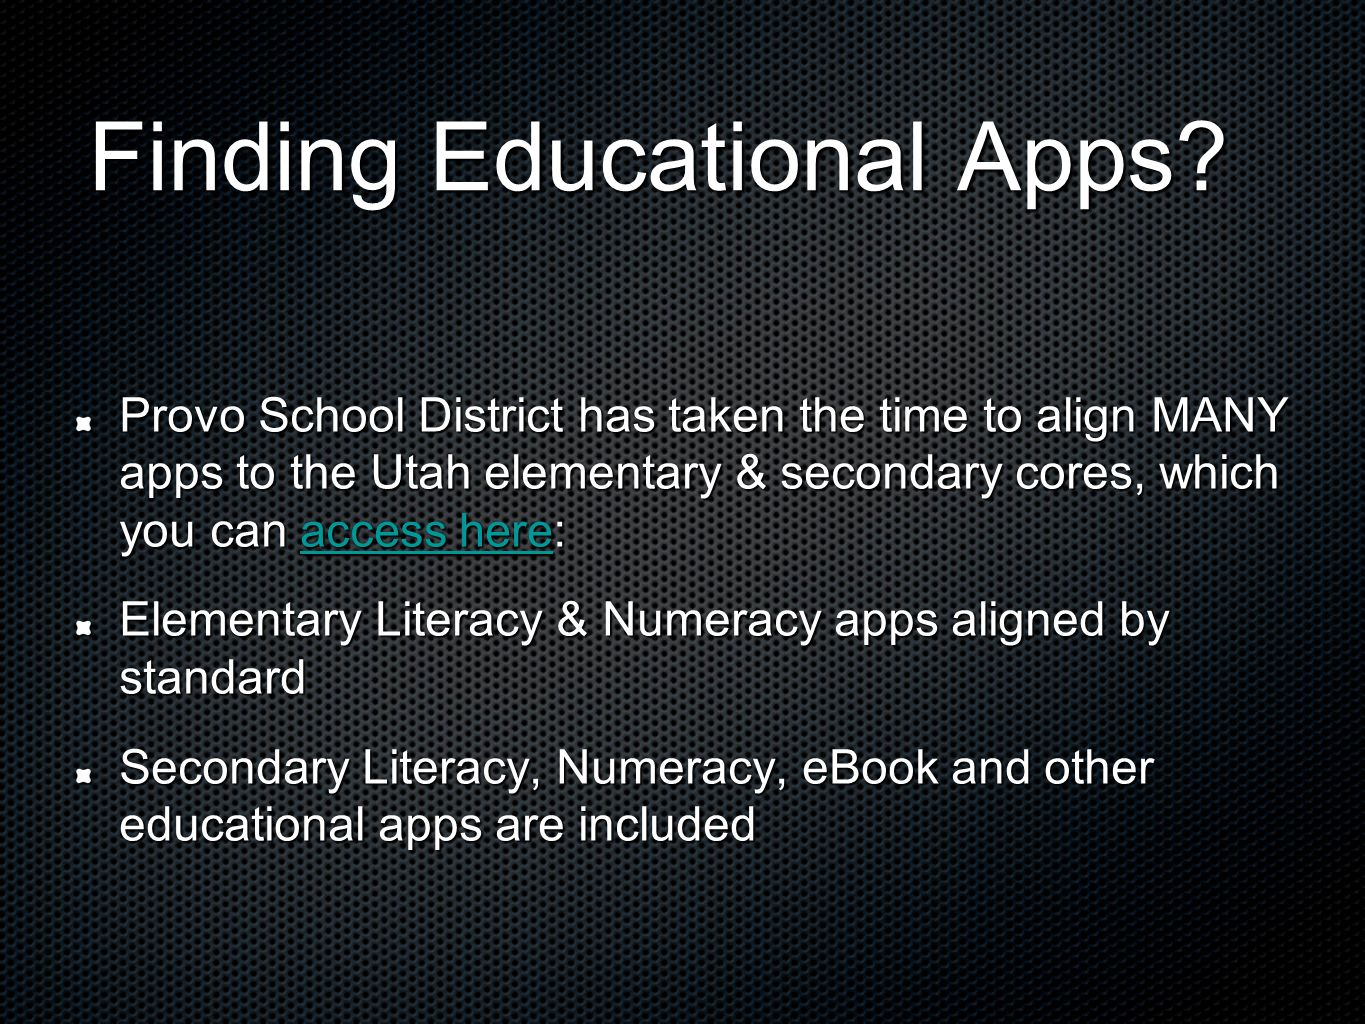 Finding Educational Apps